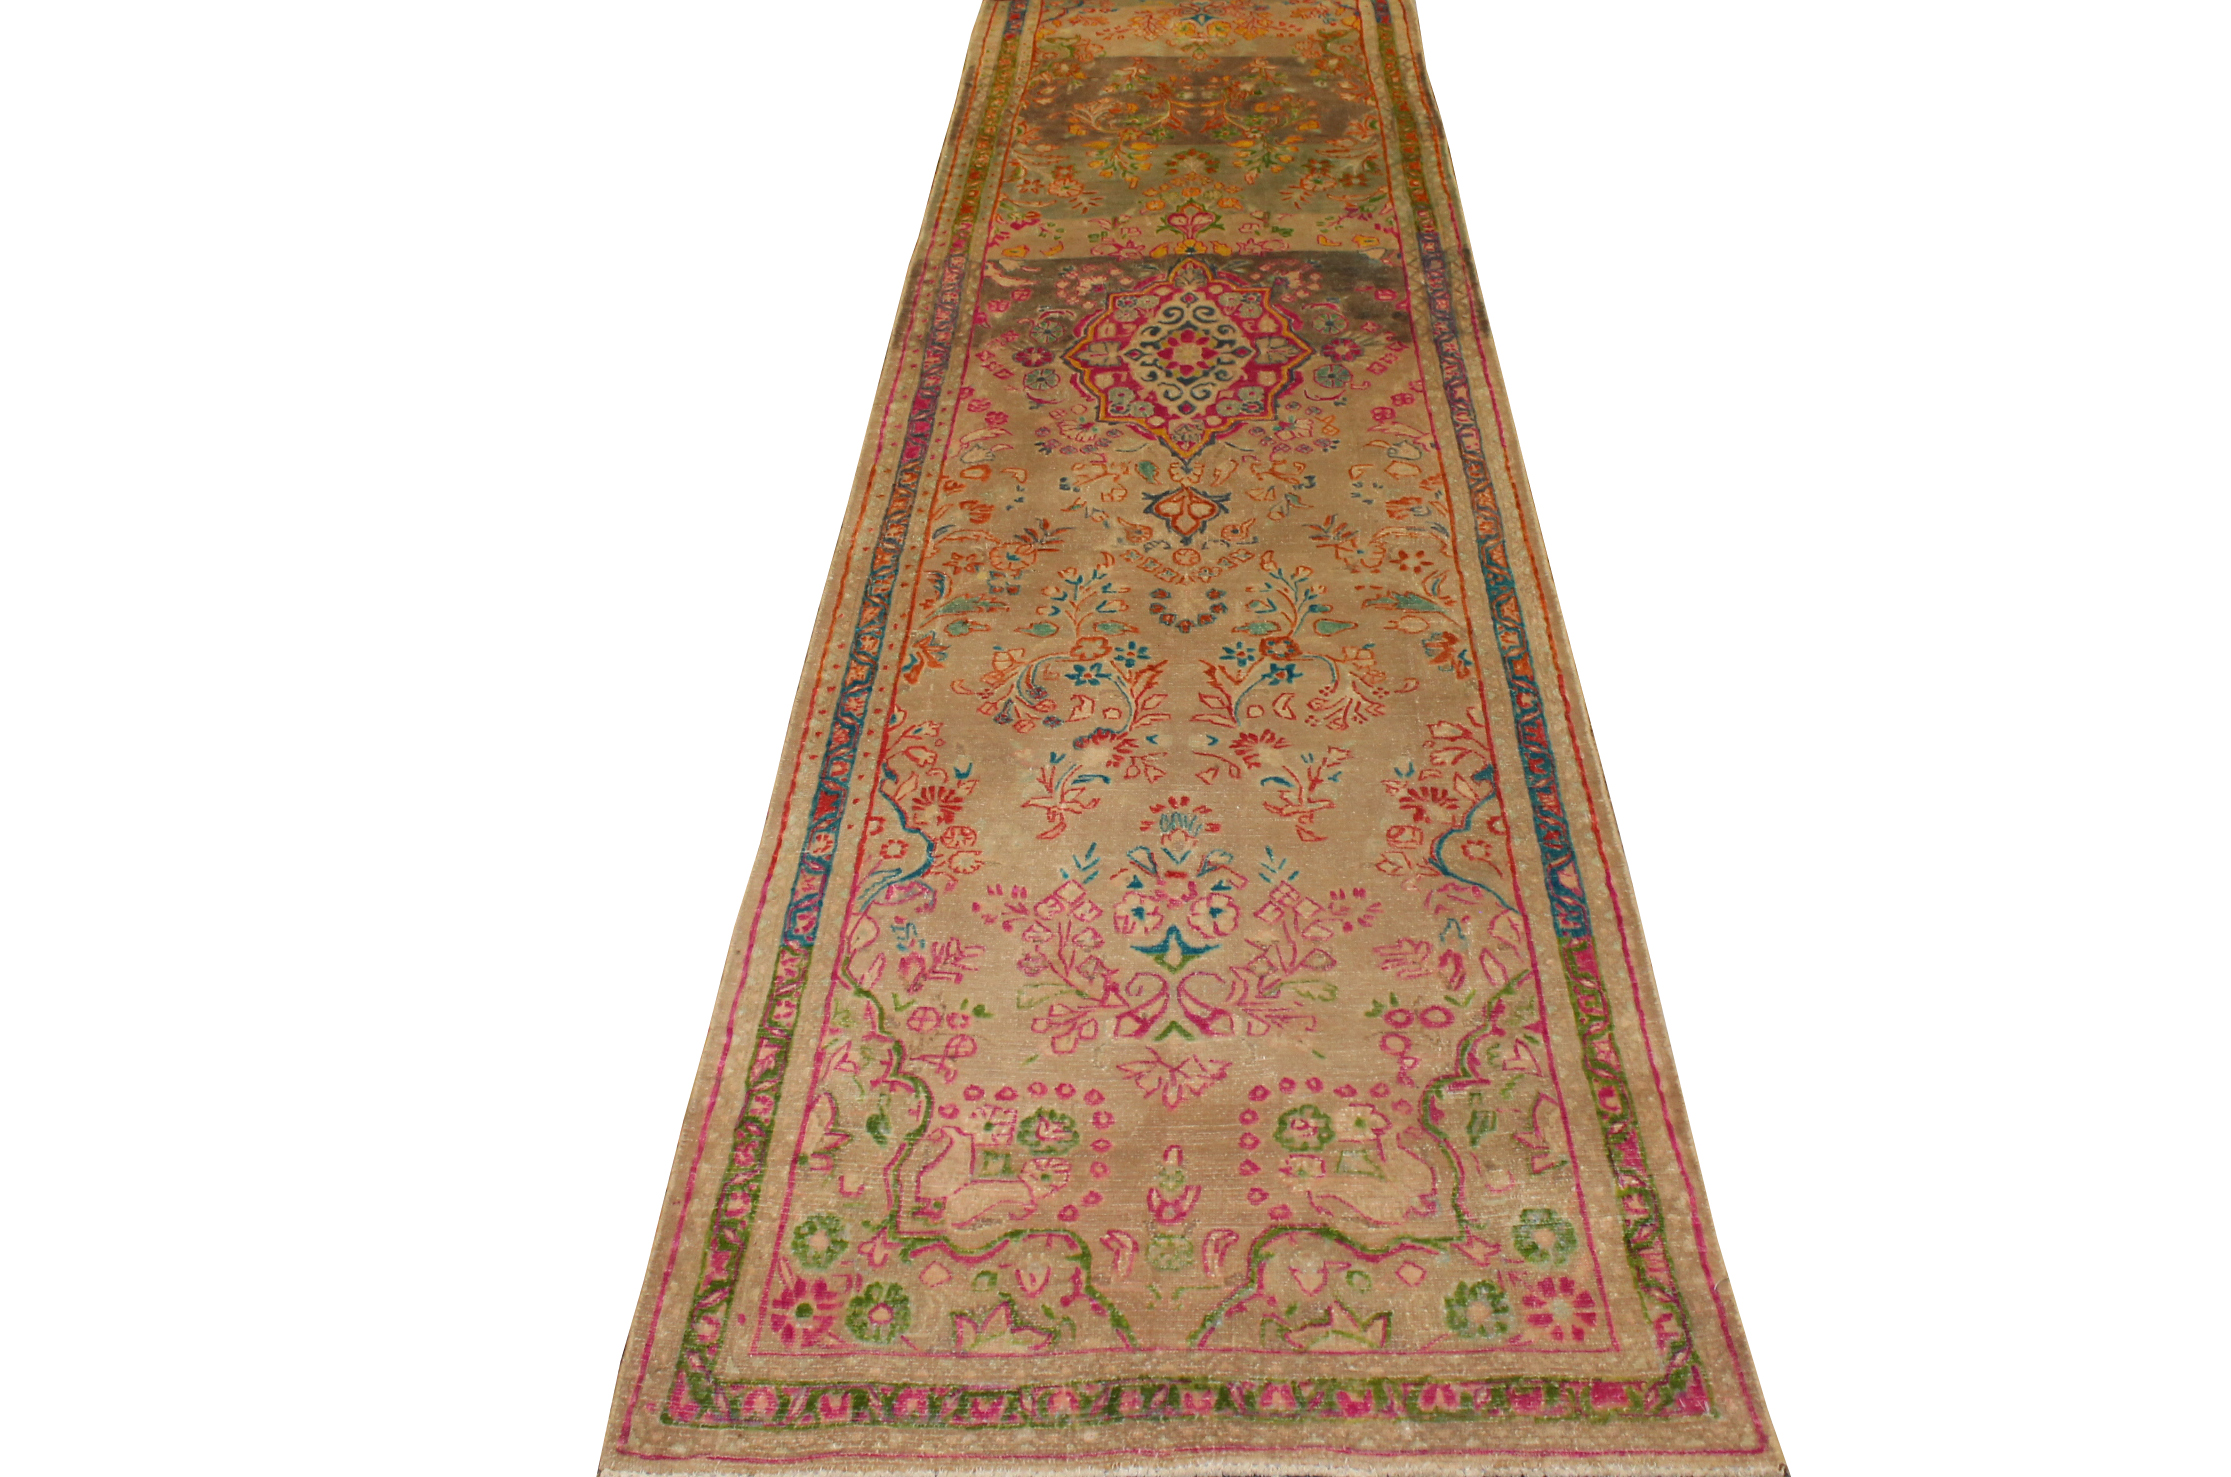 12 ft. Runner Vintage Hand Knotted Wool Area Rug - MR023637